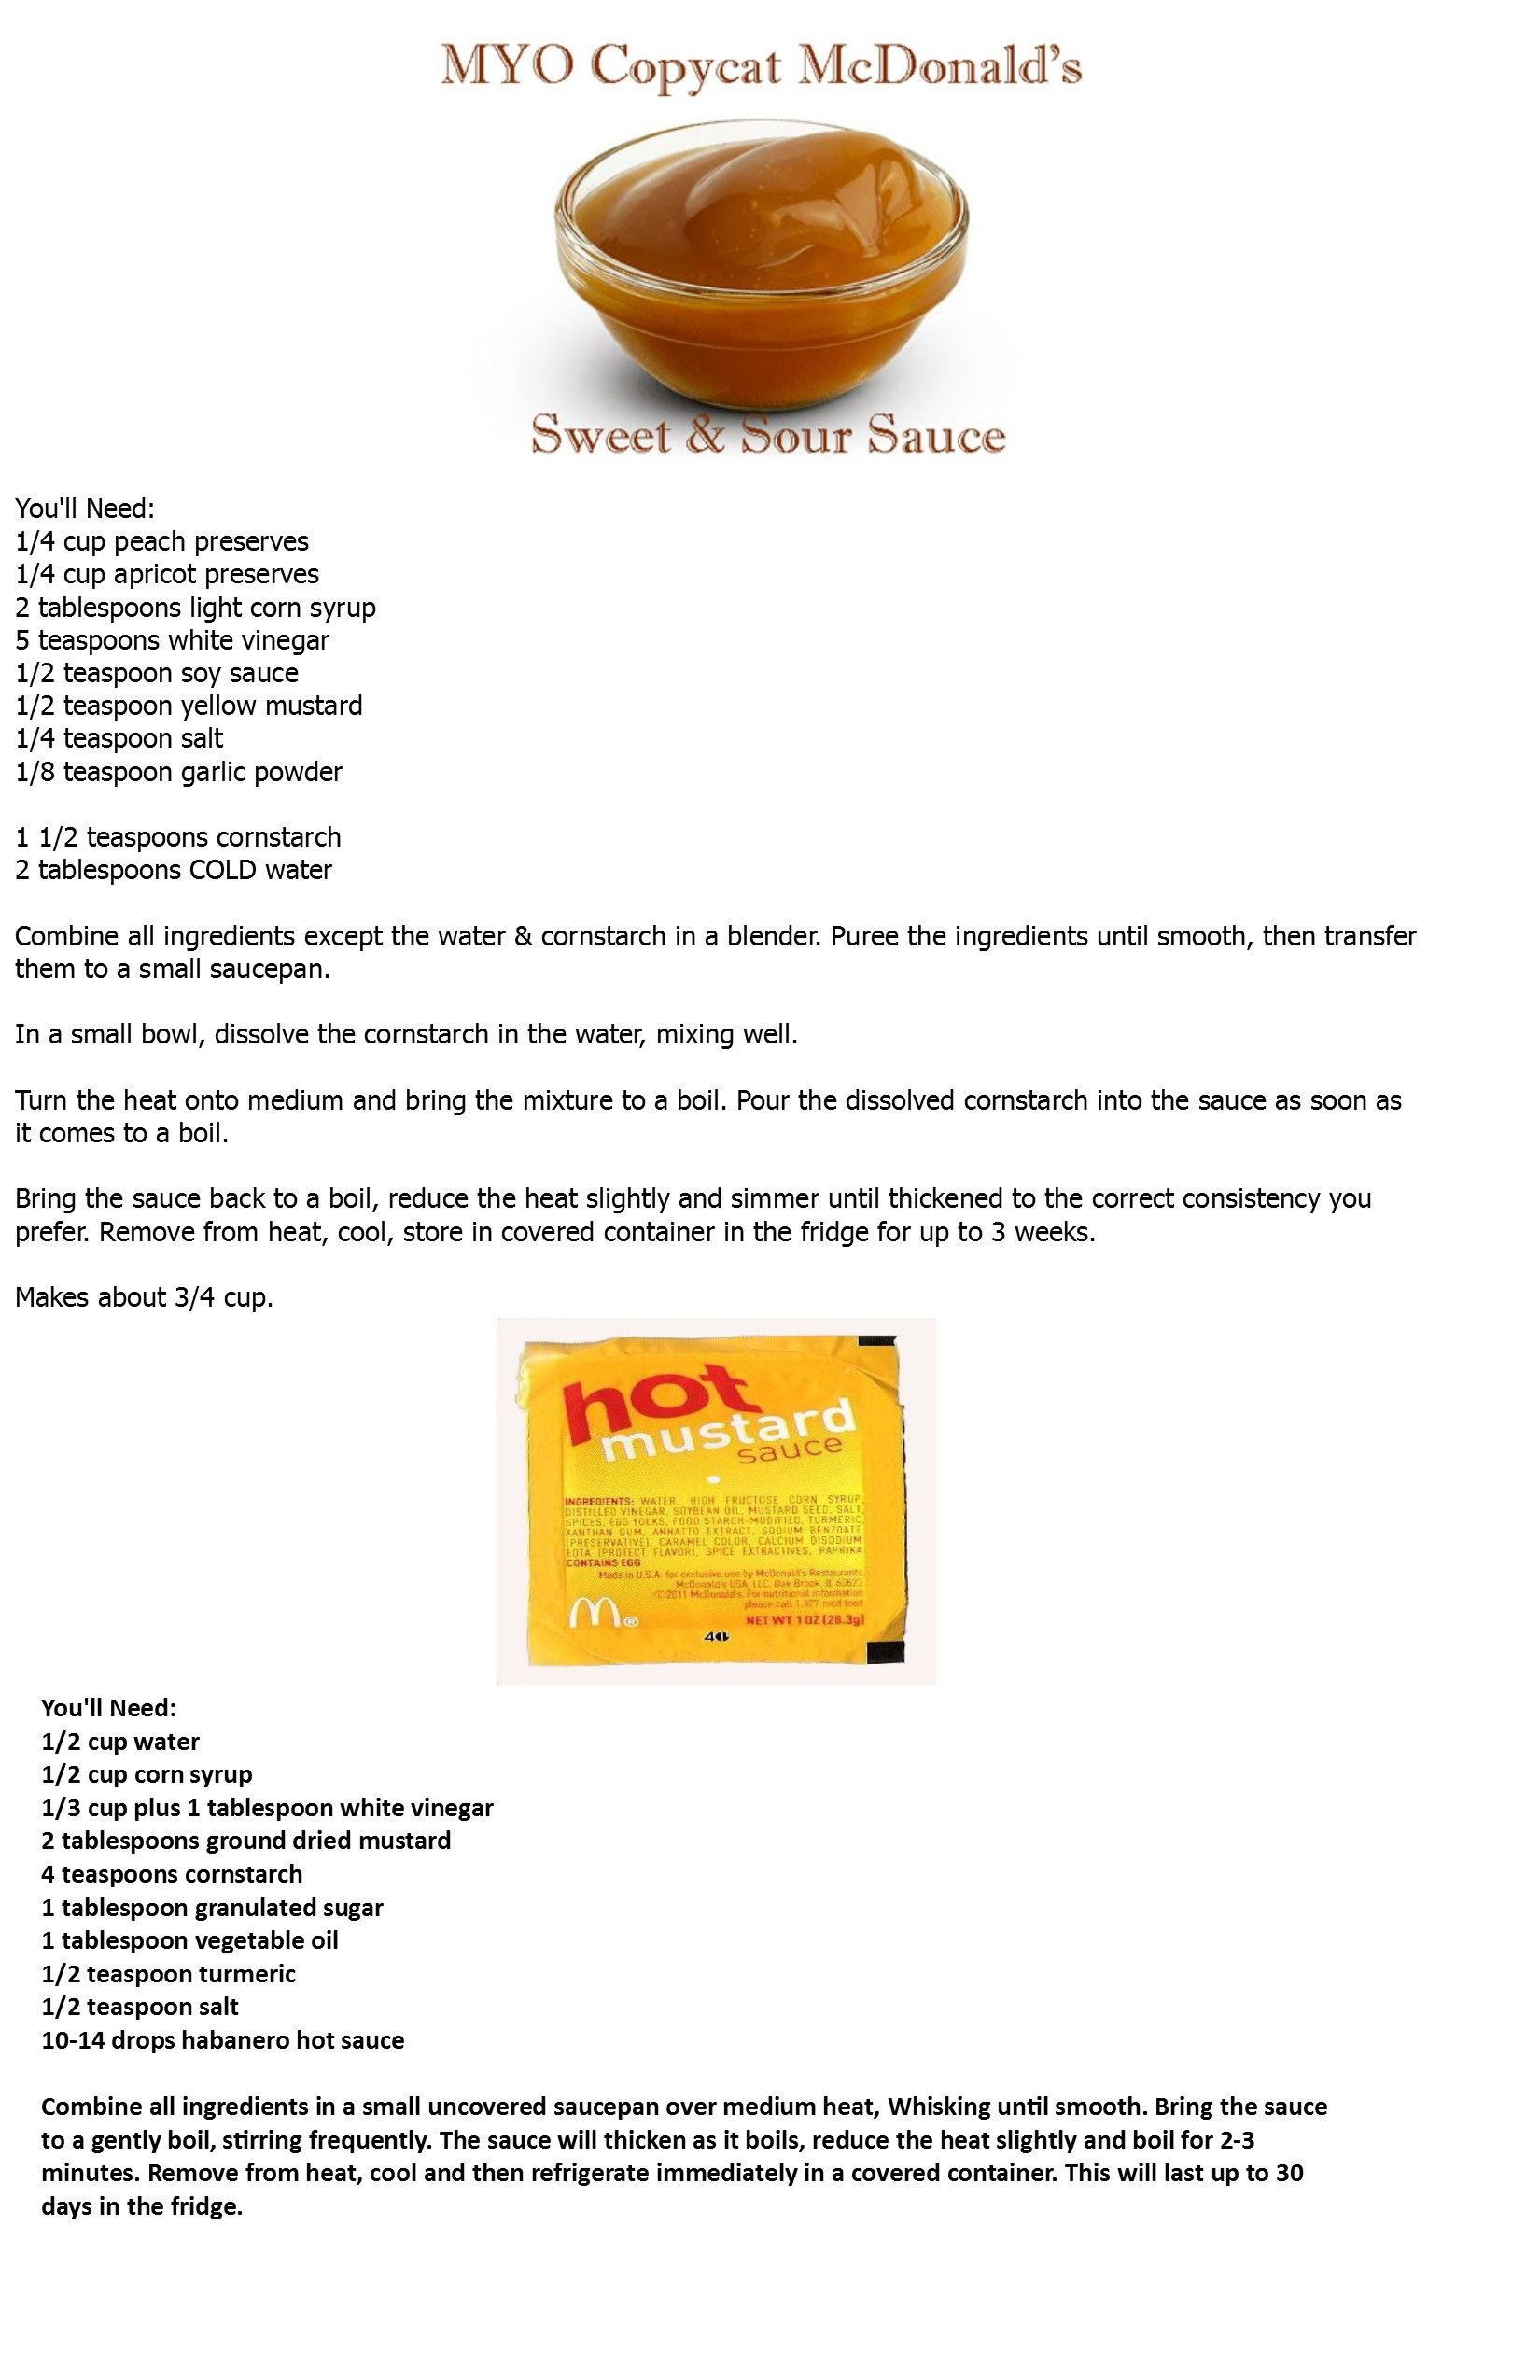 Mcdonalds Sweet Sour And Hot Mustard Recipes Mustard Recipe Sweet N Sour Sauce Recipe Mcdonalds Hot Mustard Sauce Recipe